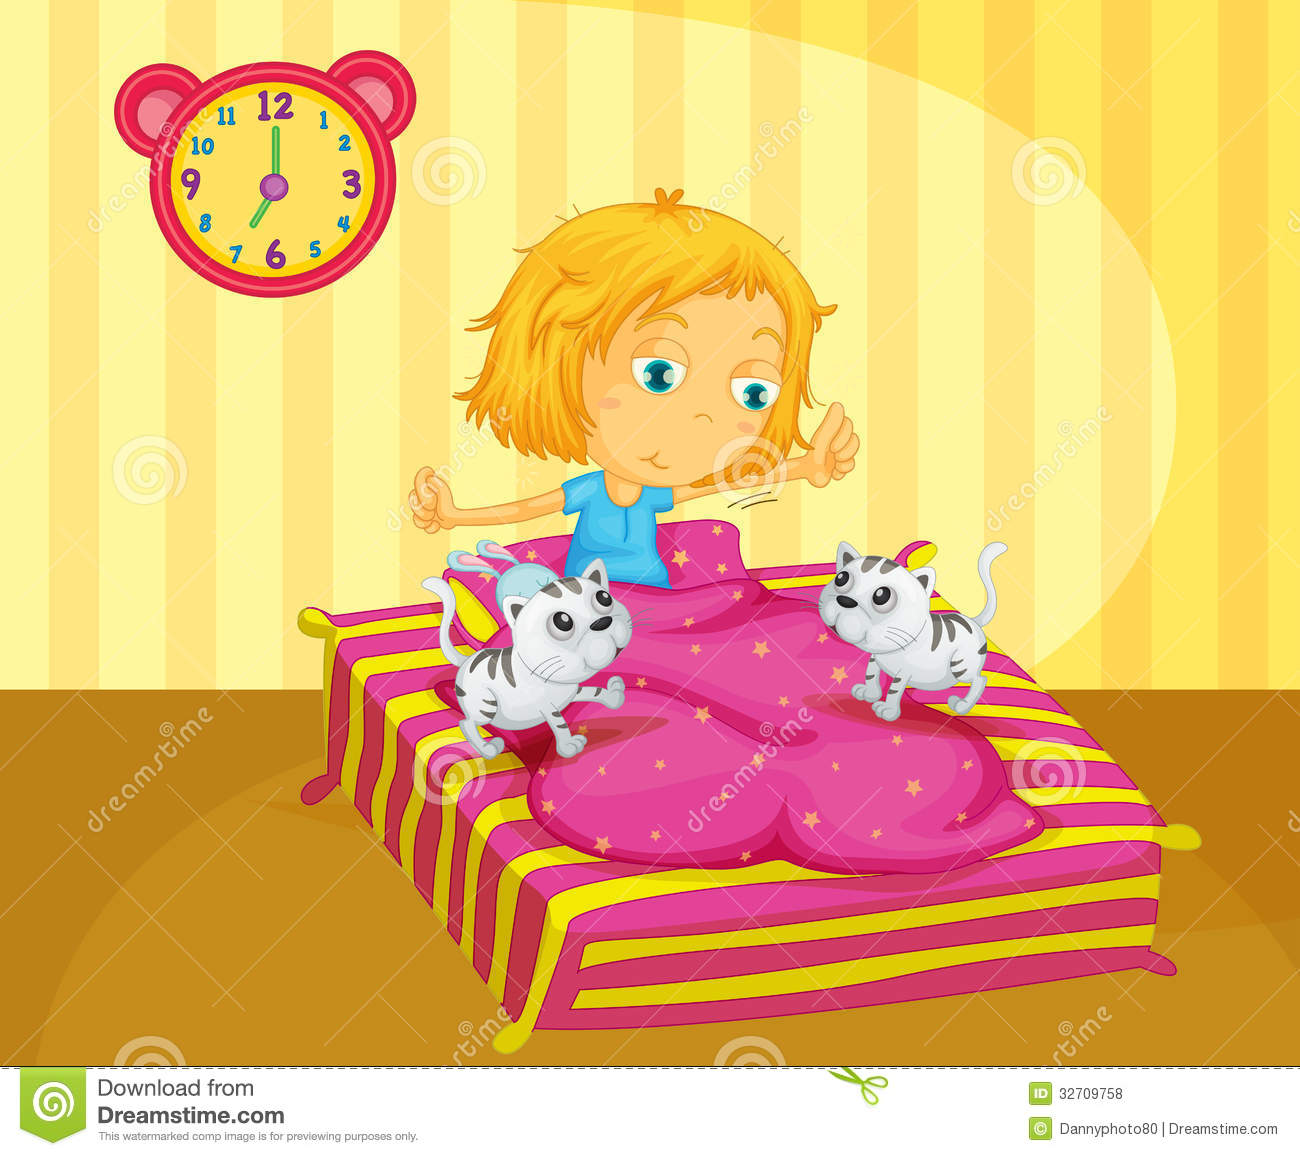 clipart of a girl waking up - photo #11